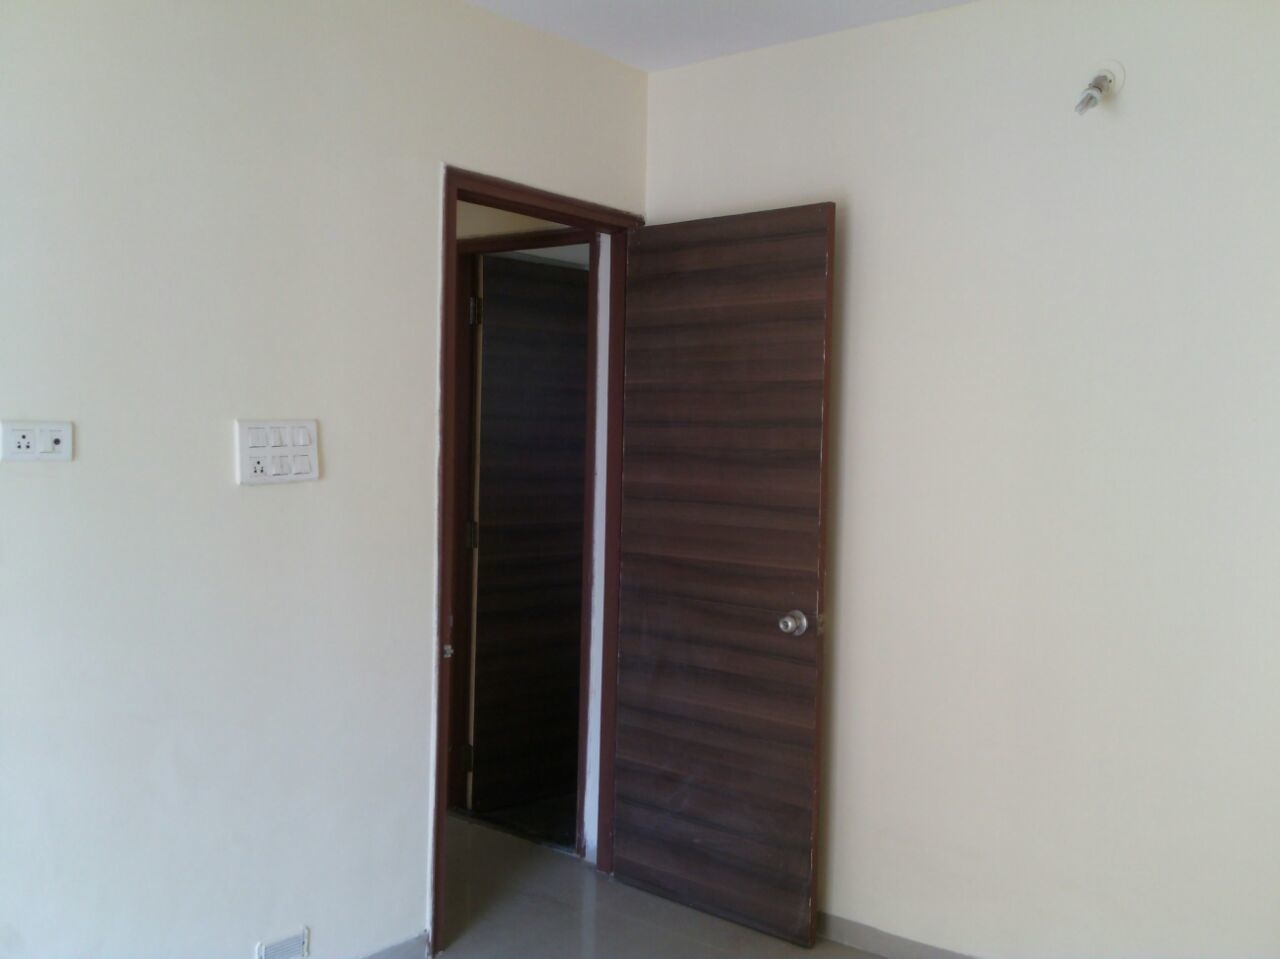 490 sq ft 1BHK 1BHK+1T (490 sq ft) Property By Bhoomi Enterprises In Project, Sector 17 Ulwe